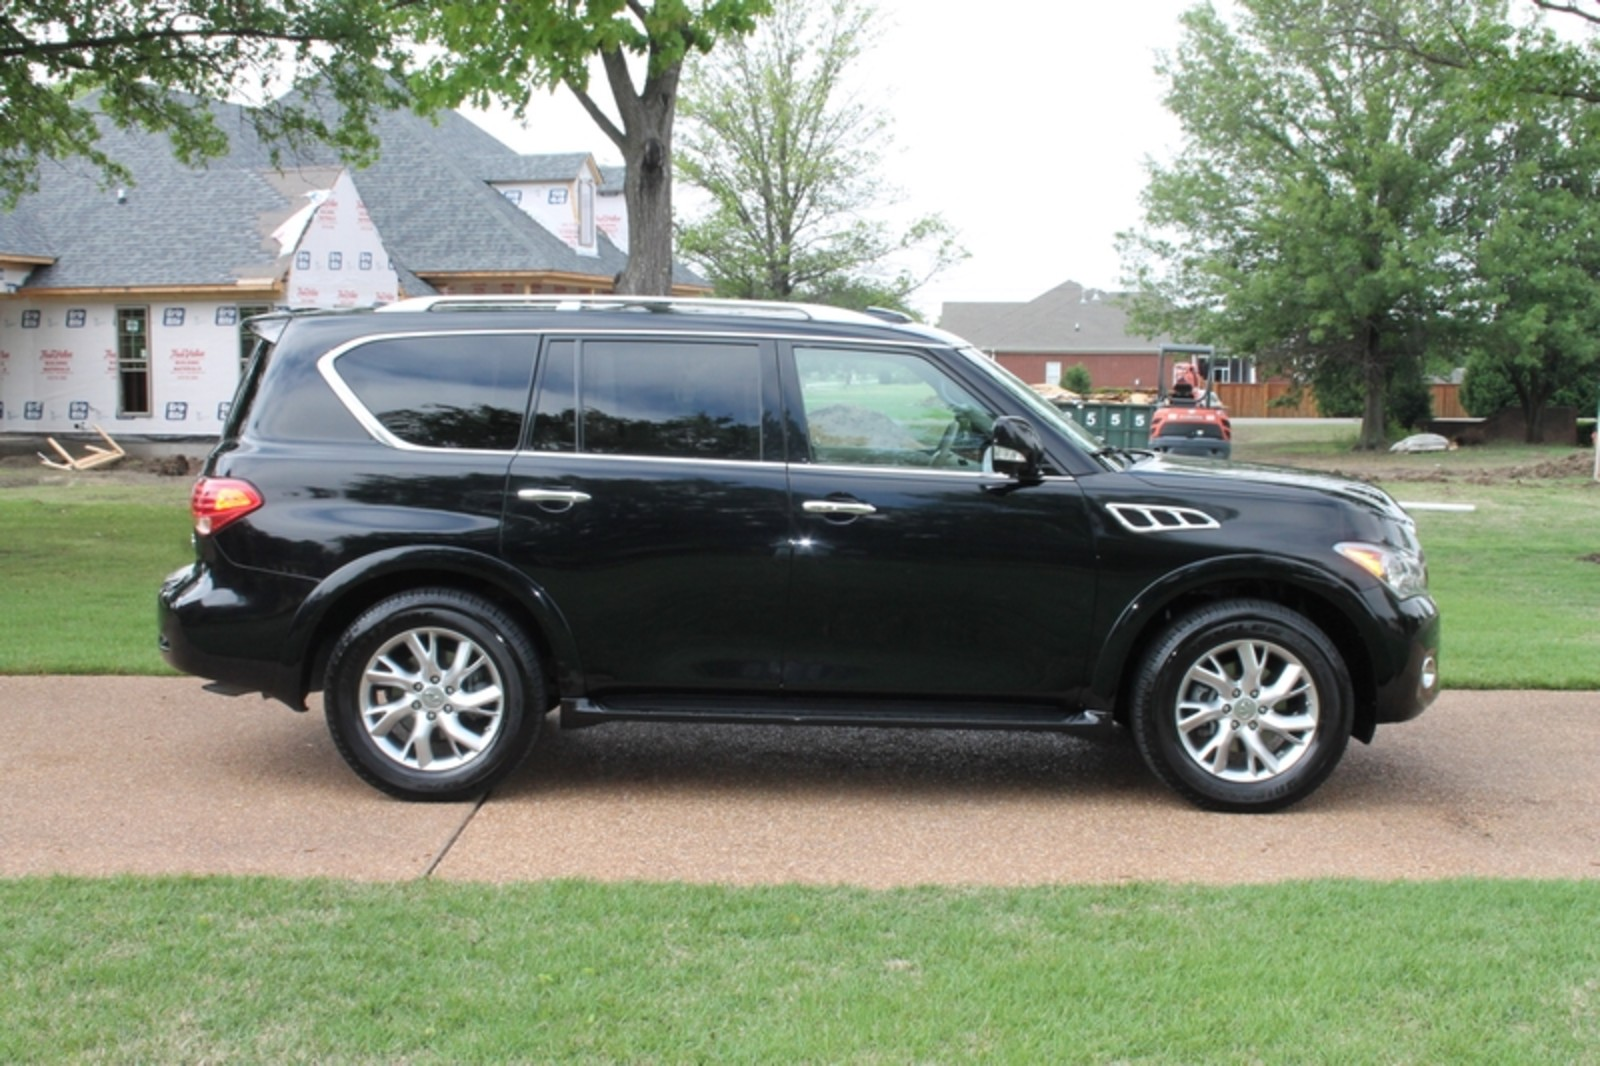 2012 infiniti qx56 7 passenger ebay. Black Bedroom Furniture Sets. Home Design Ideas